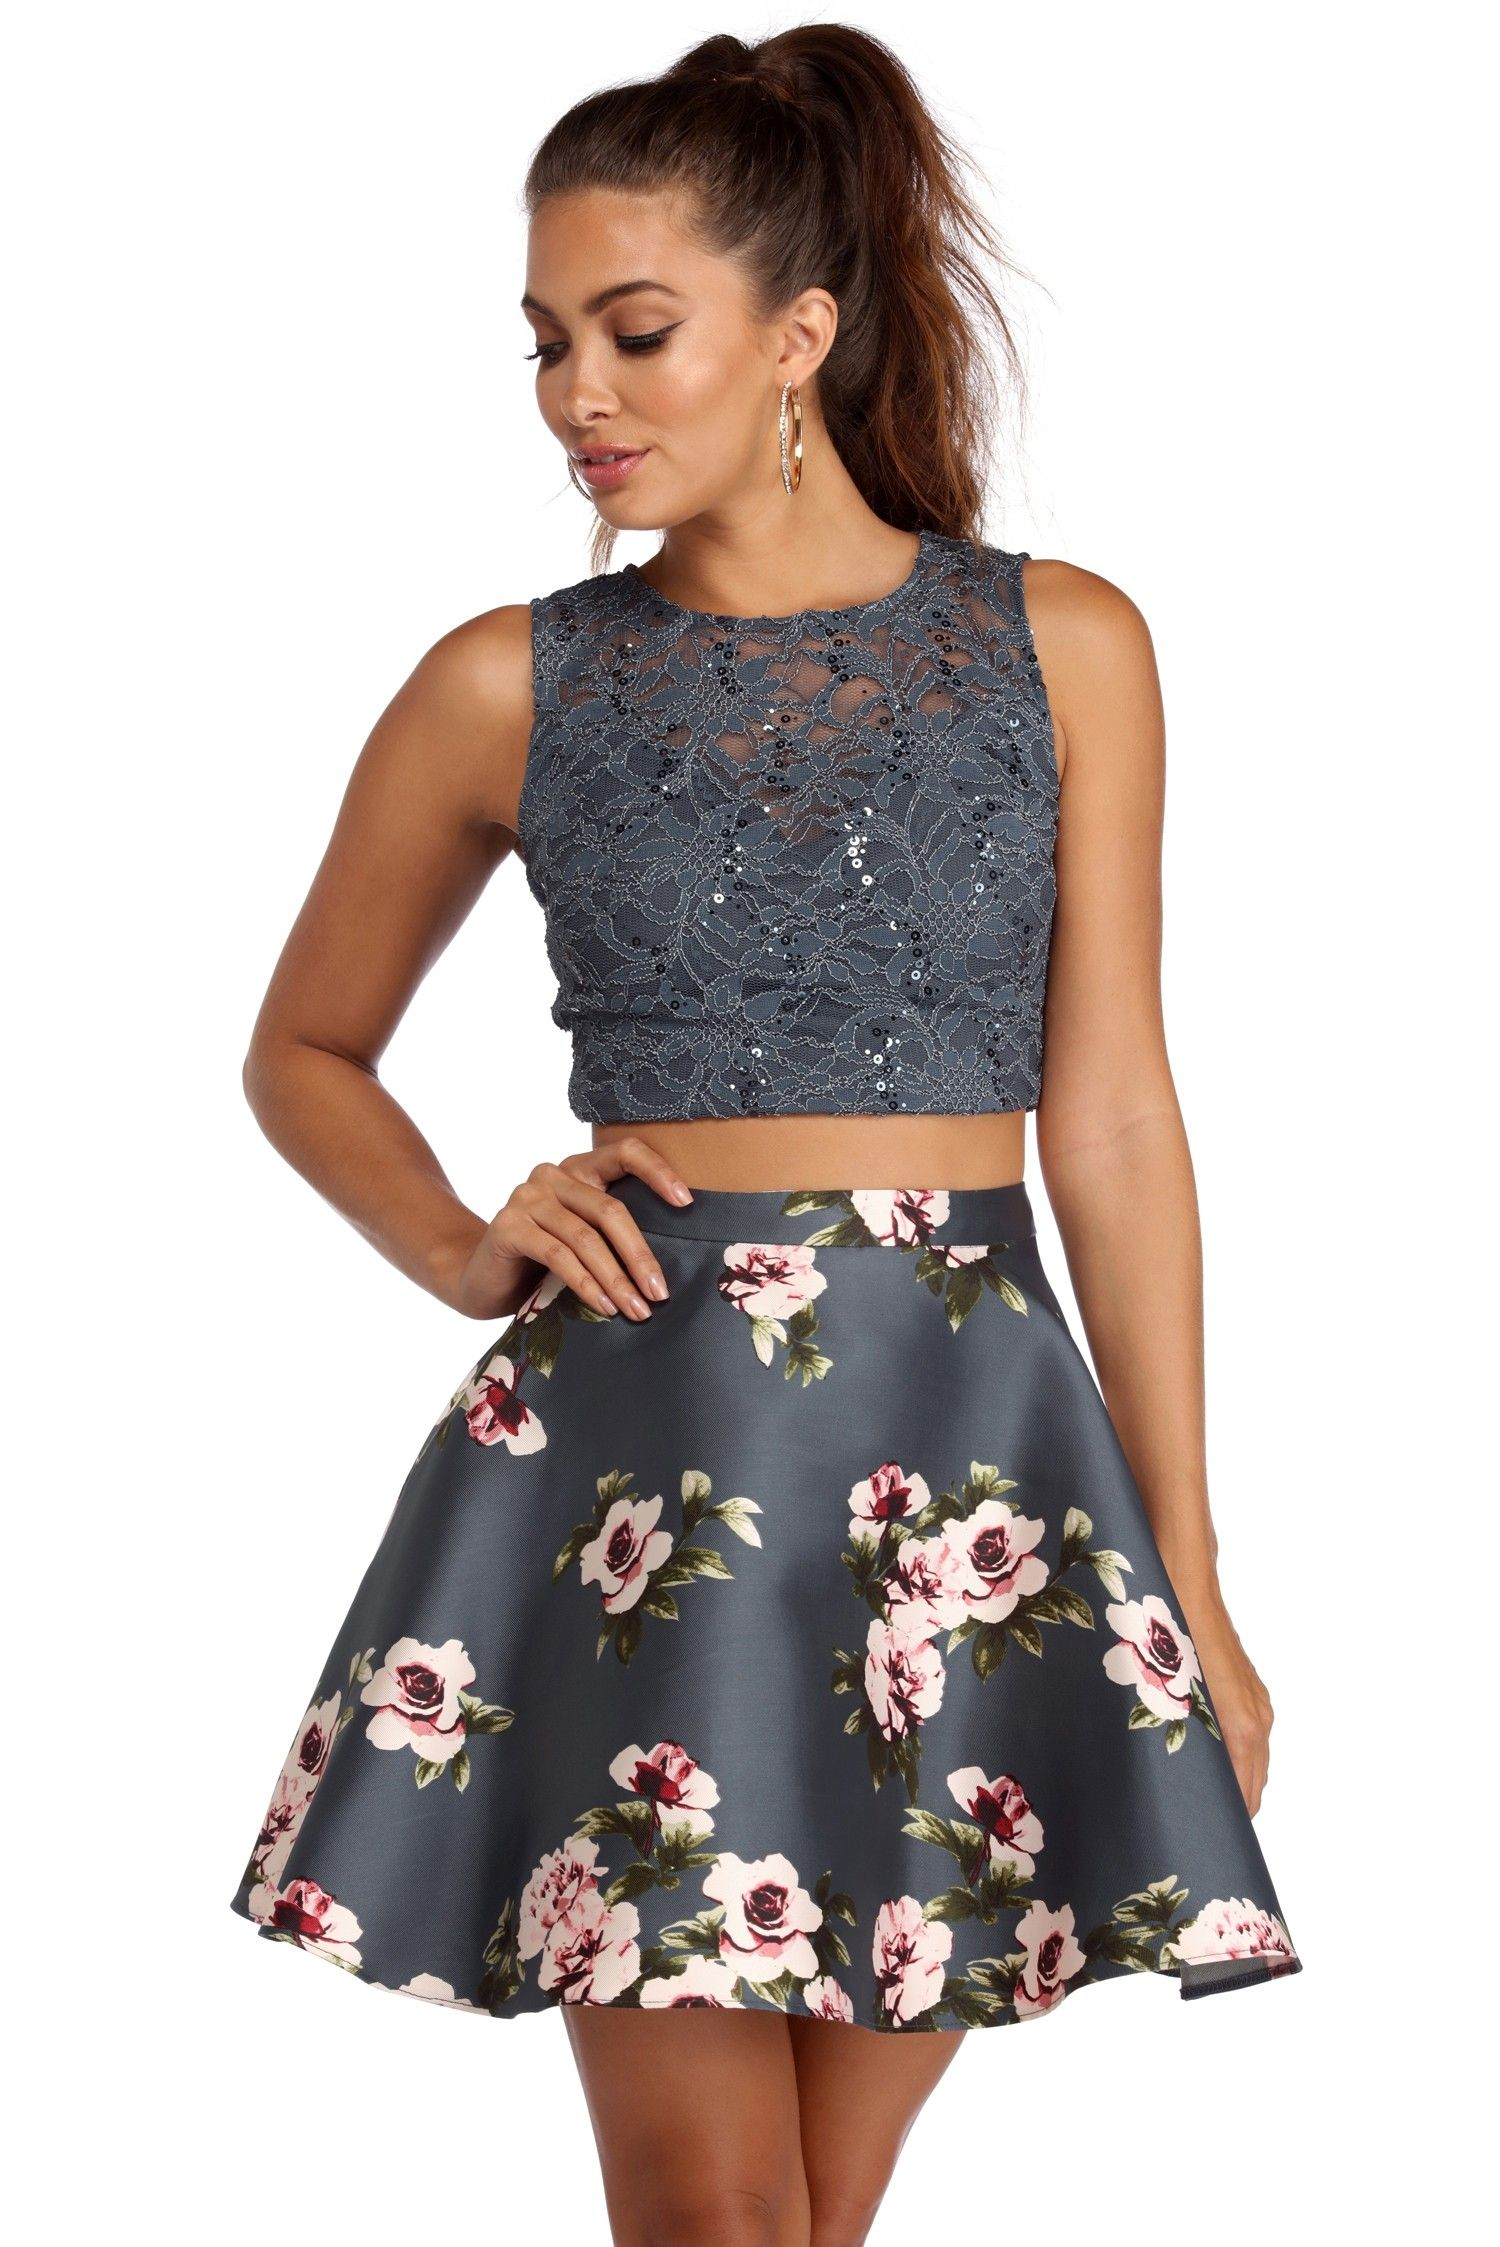 Rosie Floral Two Piece Dress Two Piece Homecoming Dress Pretty Dresses For Teens Semi Formal Dresses For Teens [ 2247 x 1500 Pixel ]